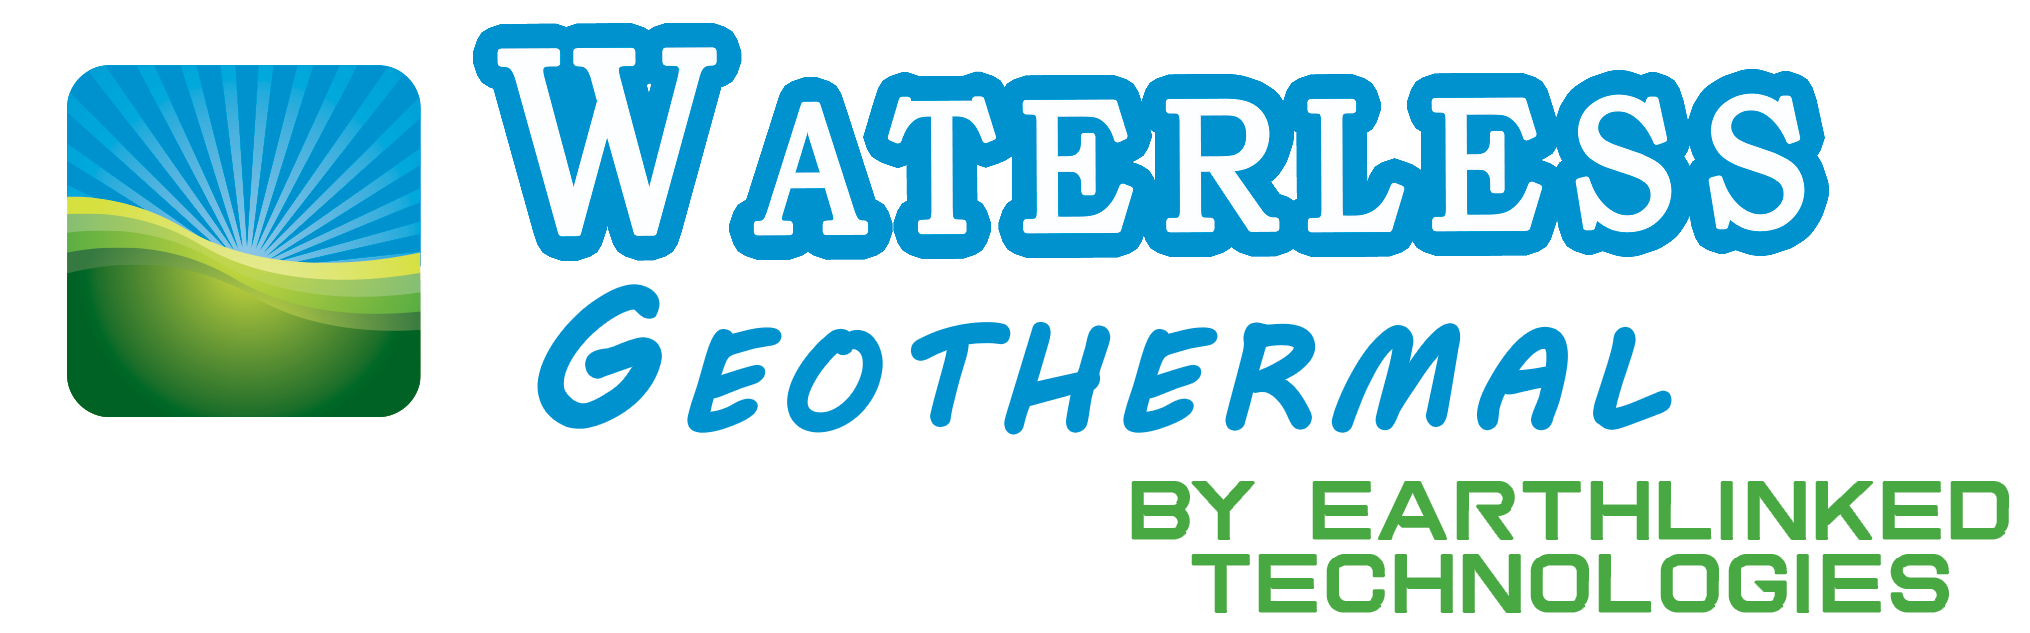 Waterless Geothermal Logo4-02